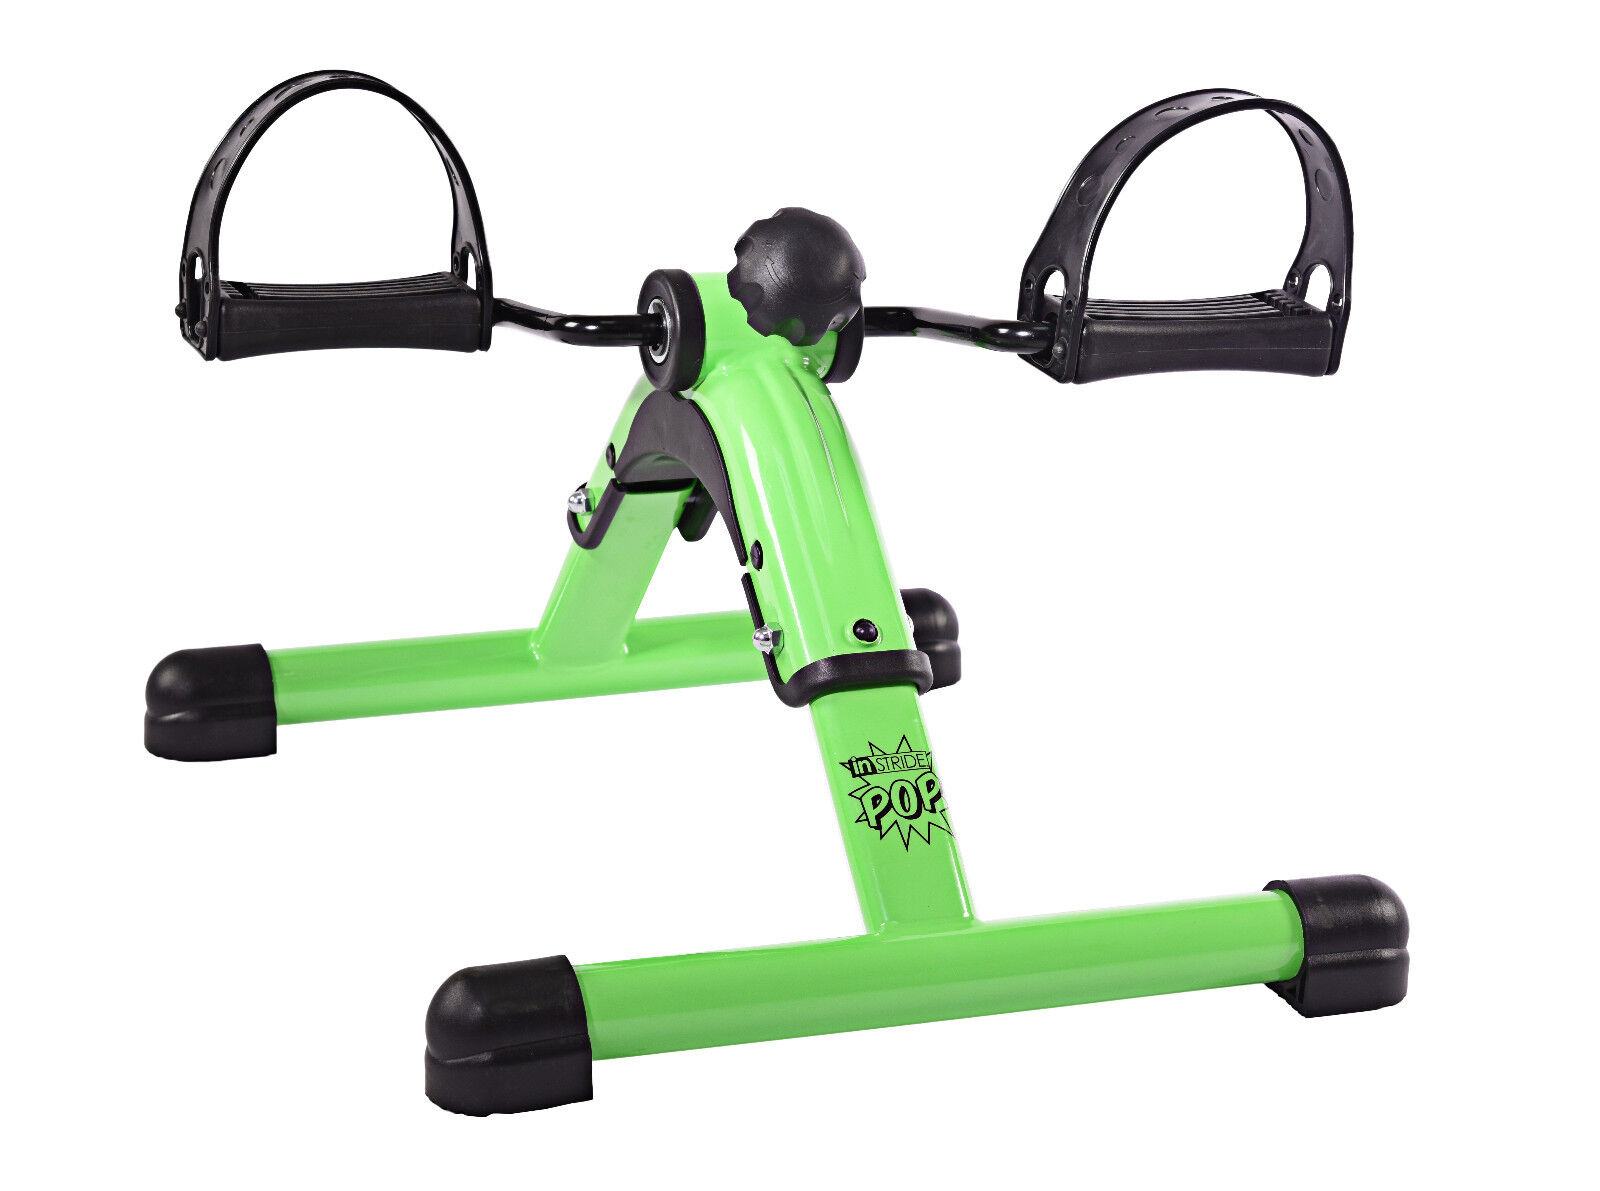 Stamina Instride Pop Fitness Cycle Exerciser Tabletop